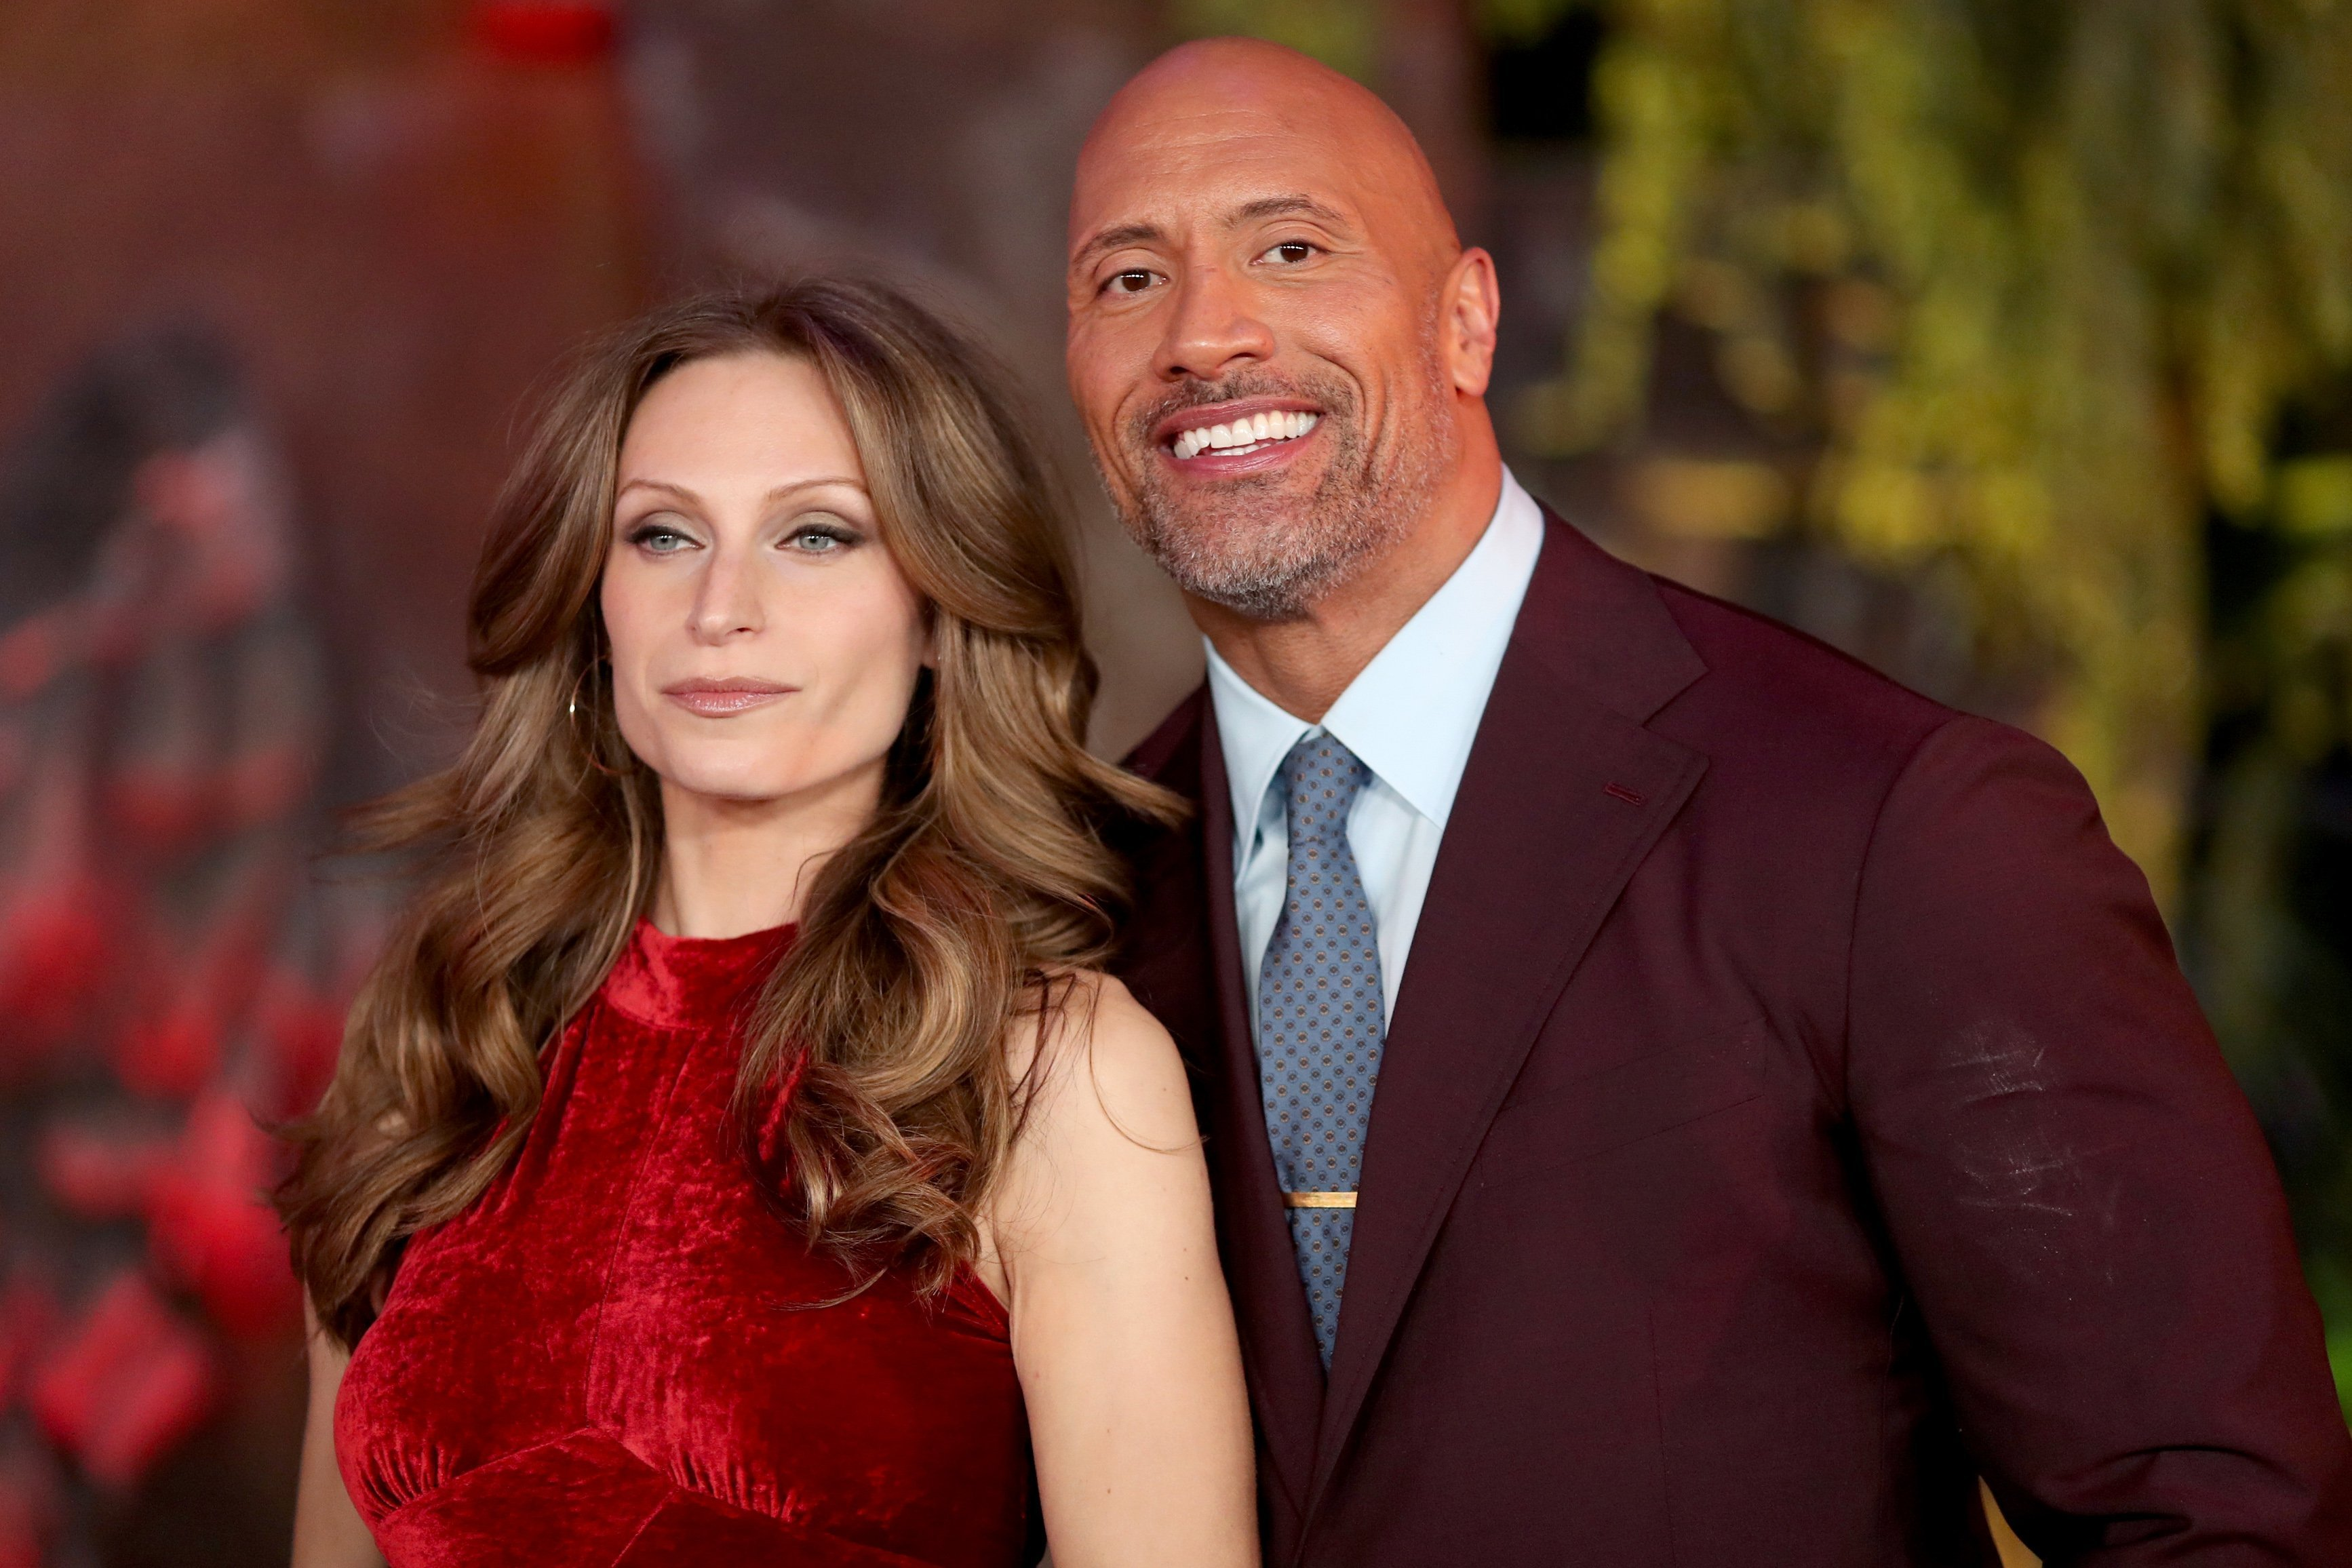 Lauren Hashian and Dwayne Johnson at the premiere of 'Jumanji: Welcome To The Jungle' on December 11, 2017 in Hollywood, California | Photo: Getty Images